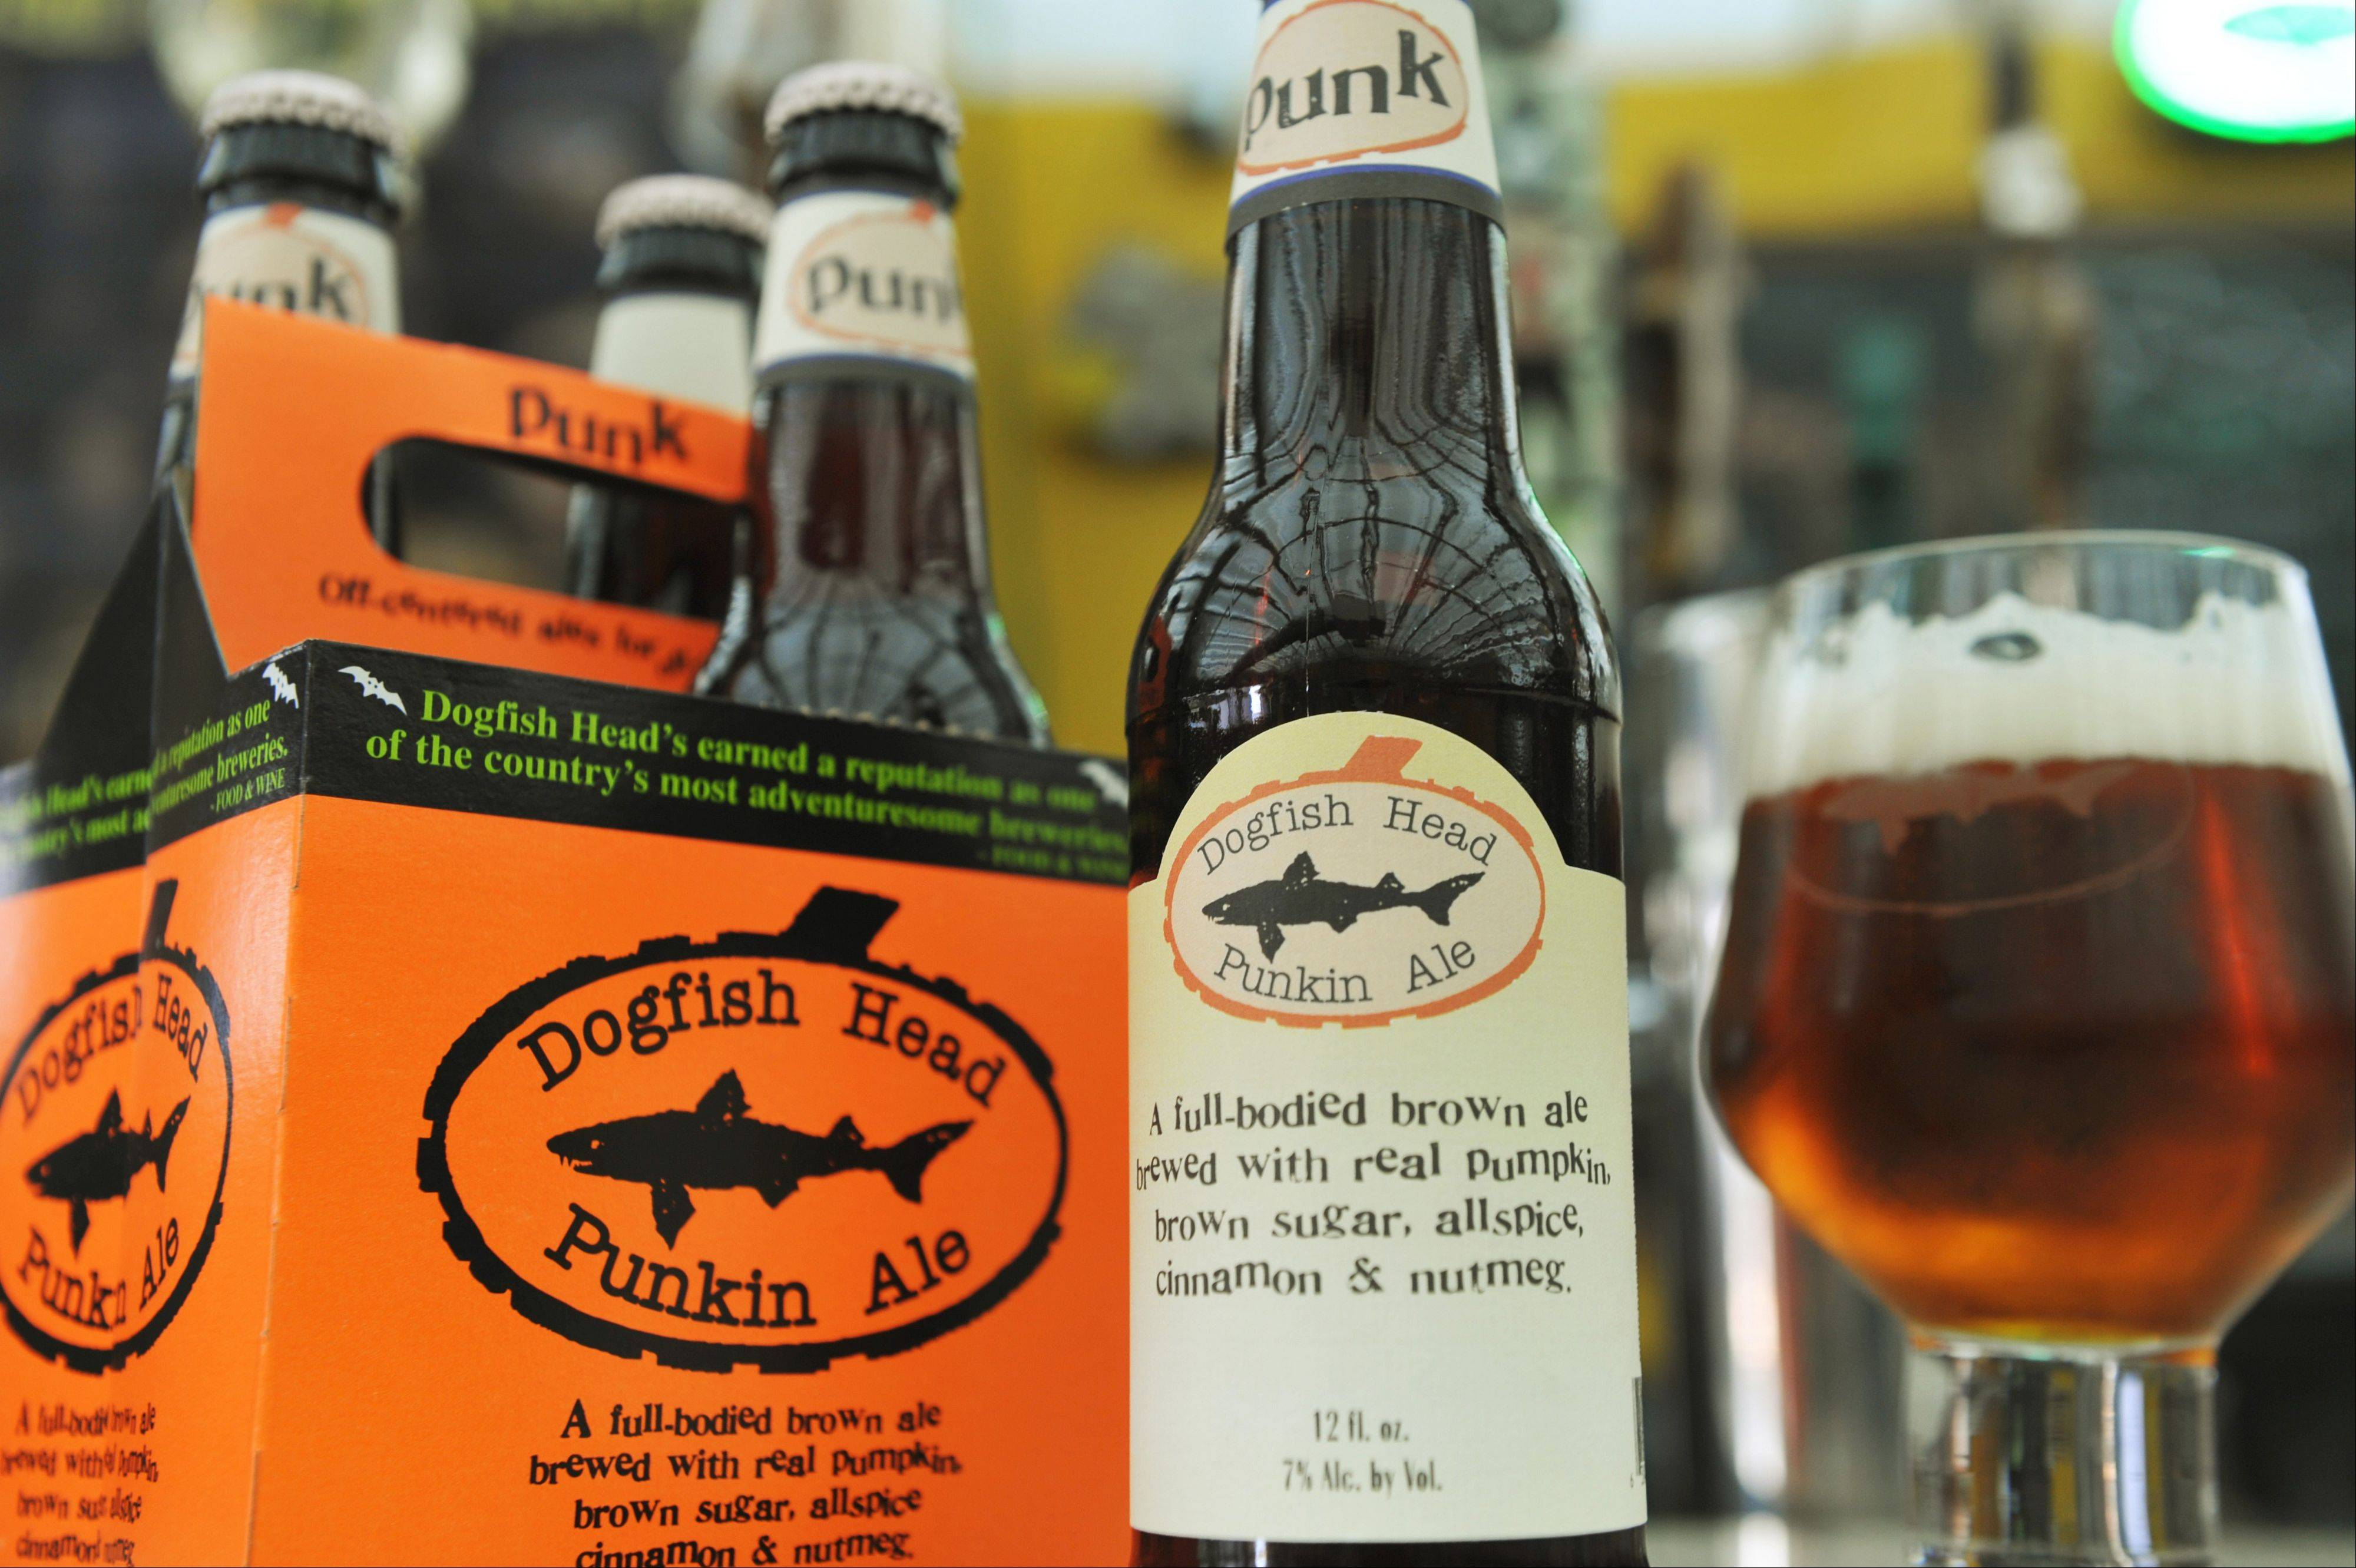 Punkin Ale from Dogfish Head Craft Brewery is first and foremost a brown ale, but is complemented with more subtle flavors of pumpkin, brown sugar, cinnamon and nutmeg.